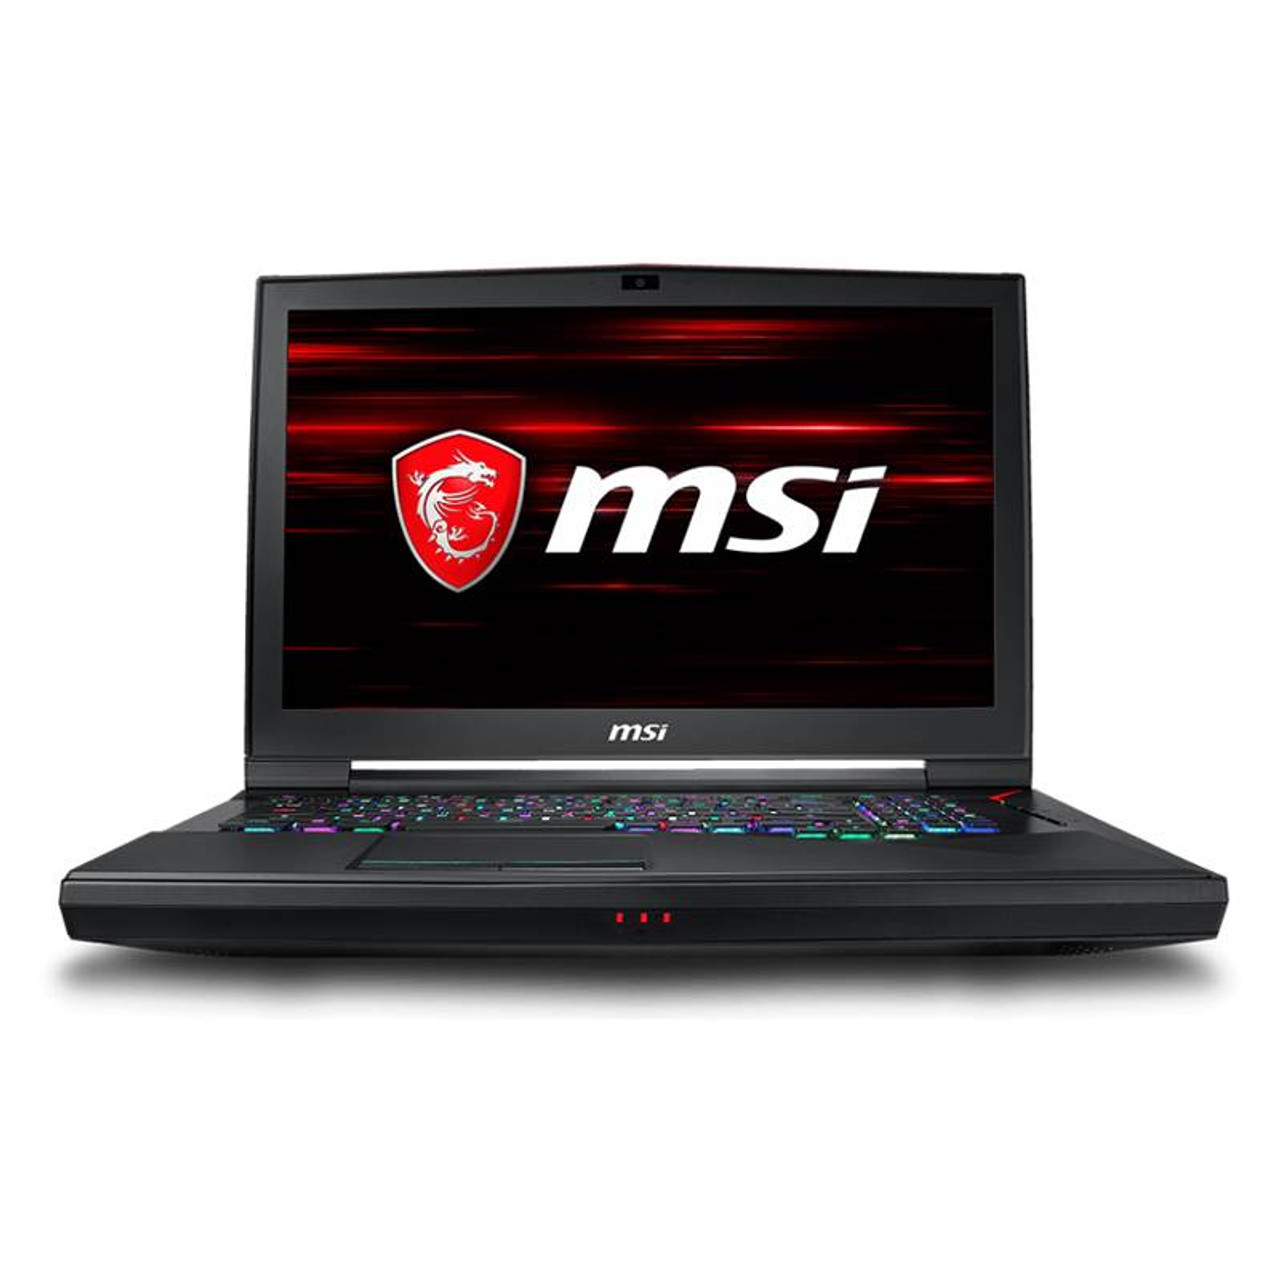 Image for MSI Titan GT75 8RF 17.3in 120Hz Gaming Notebook i7 16GB 256GB 1TB GTX1070 W10 CX Computer Superstore